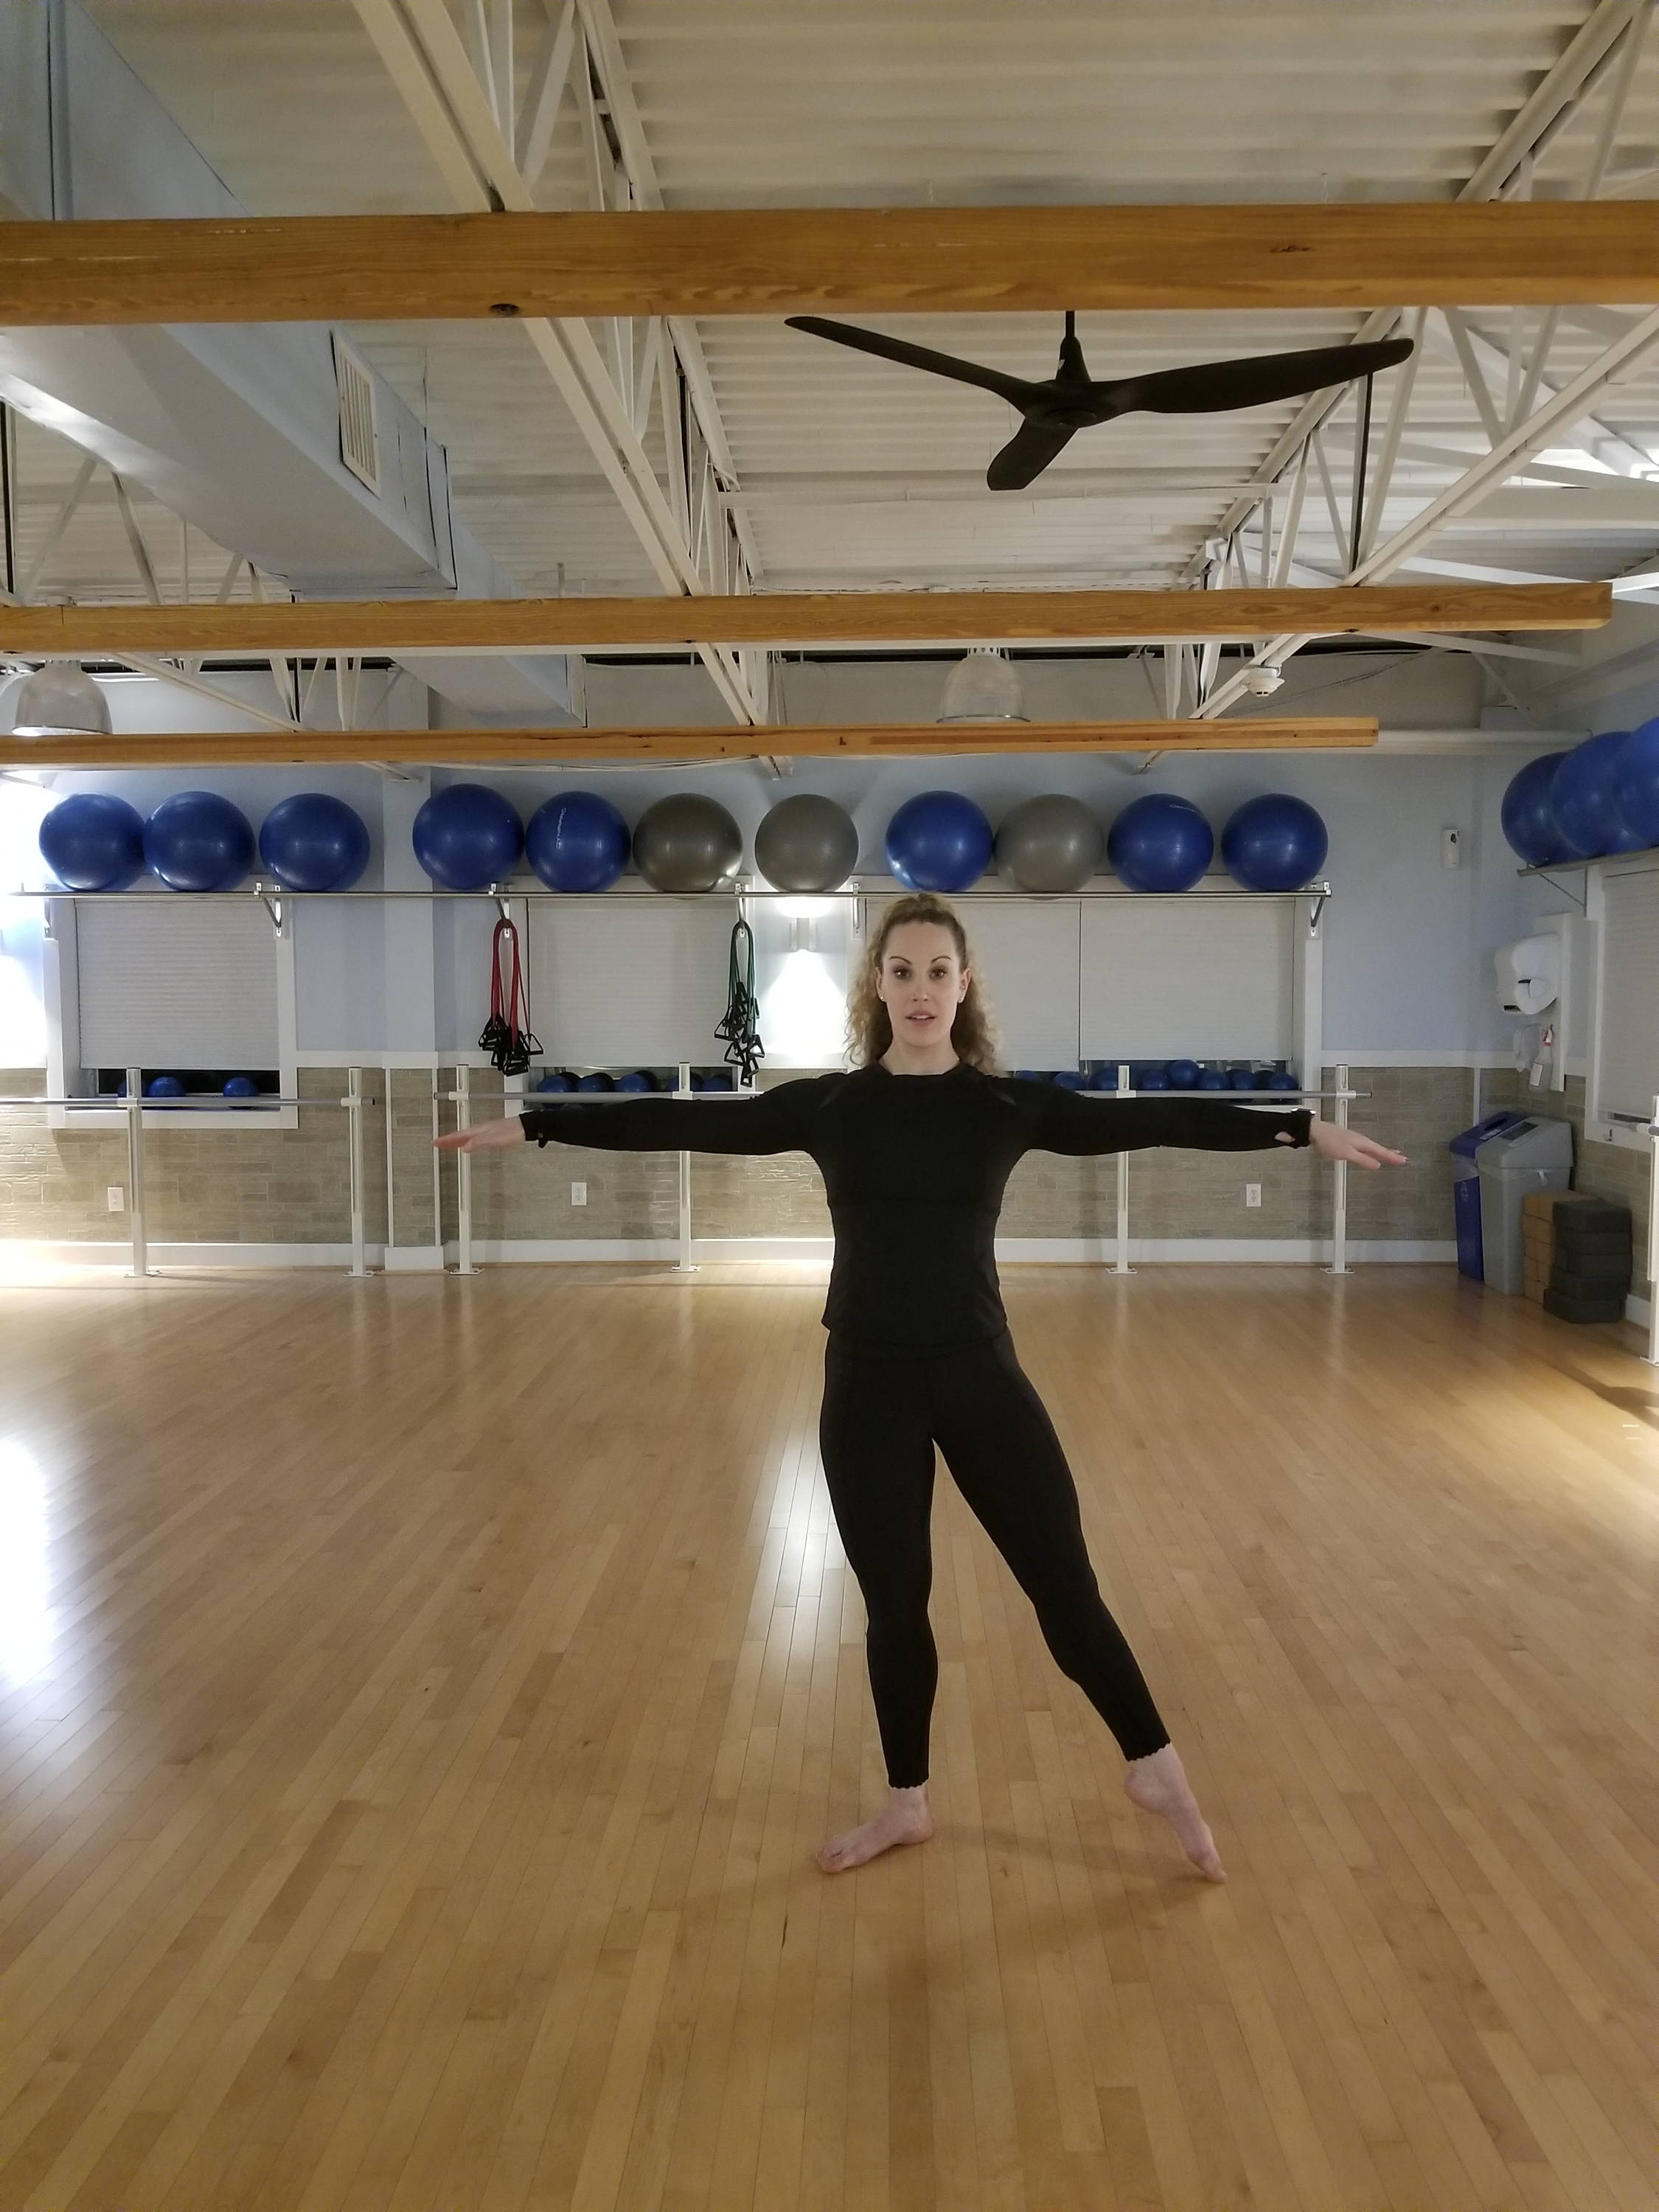 Blog 62 Building Better Dancers Through Mind To Muscle